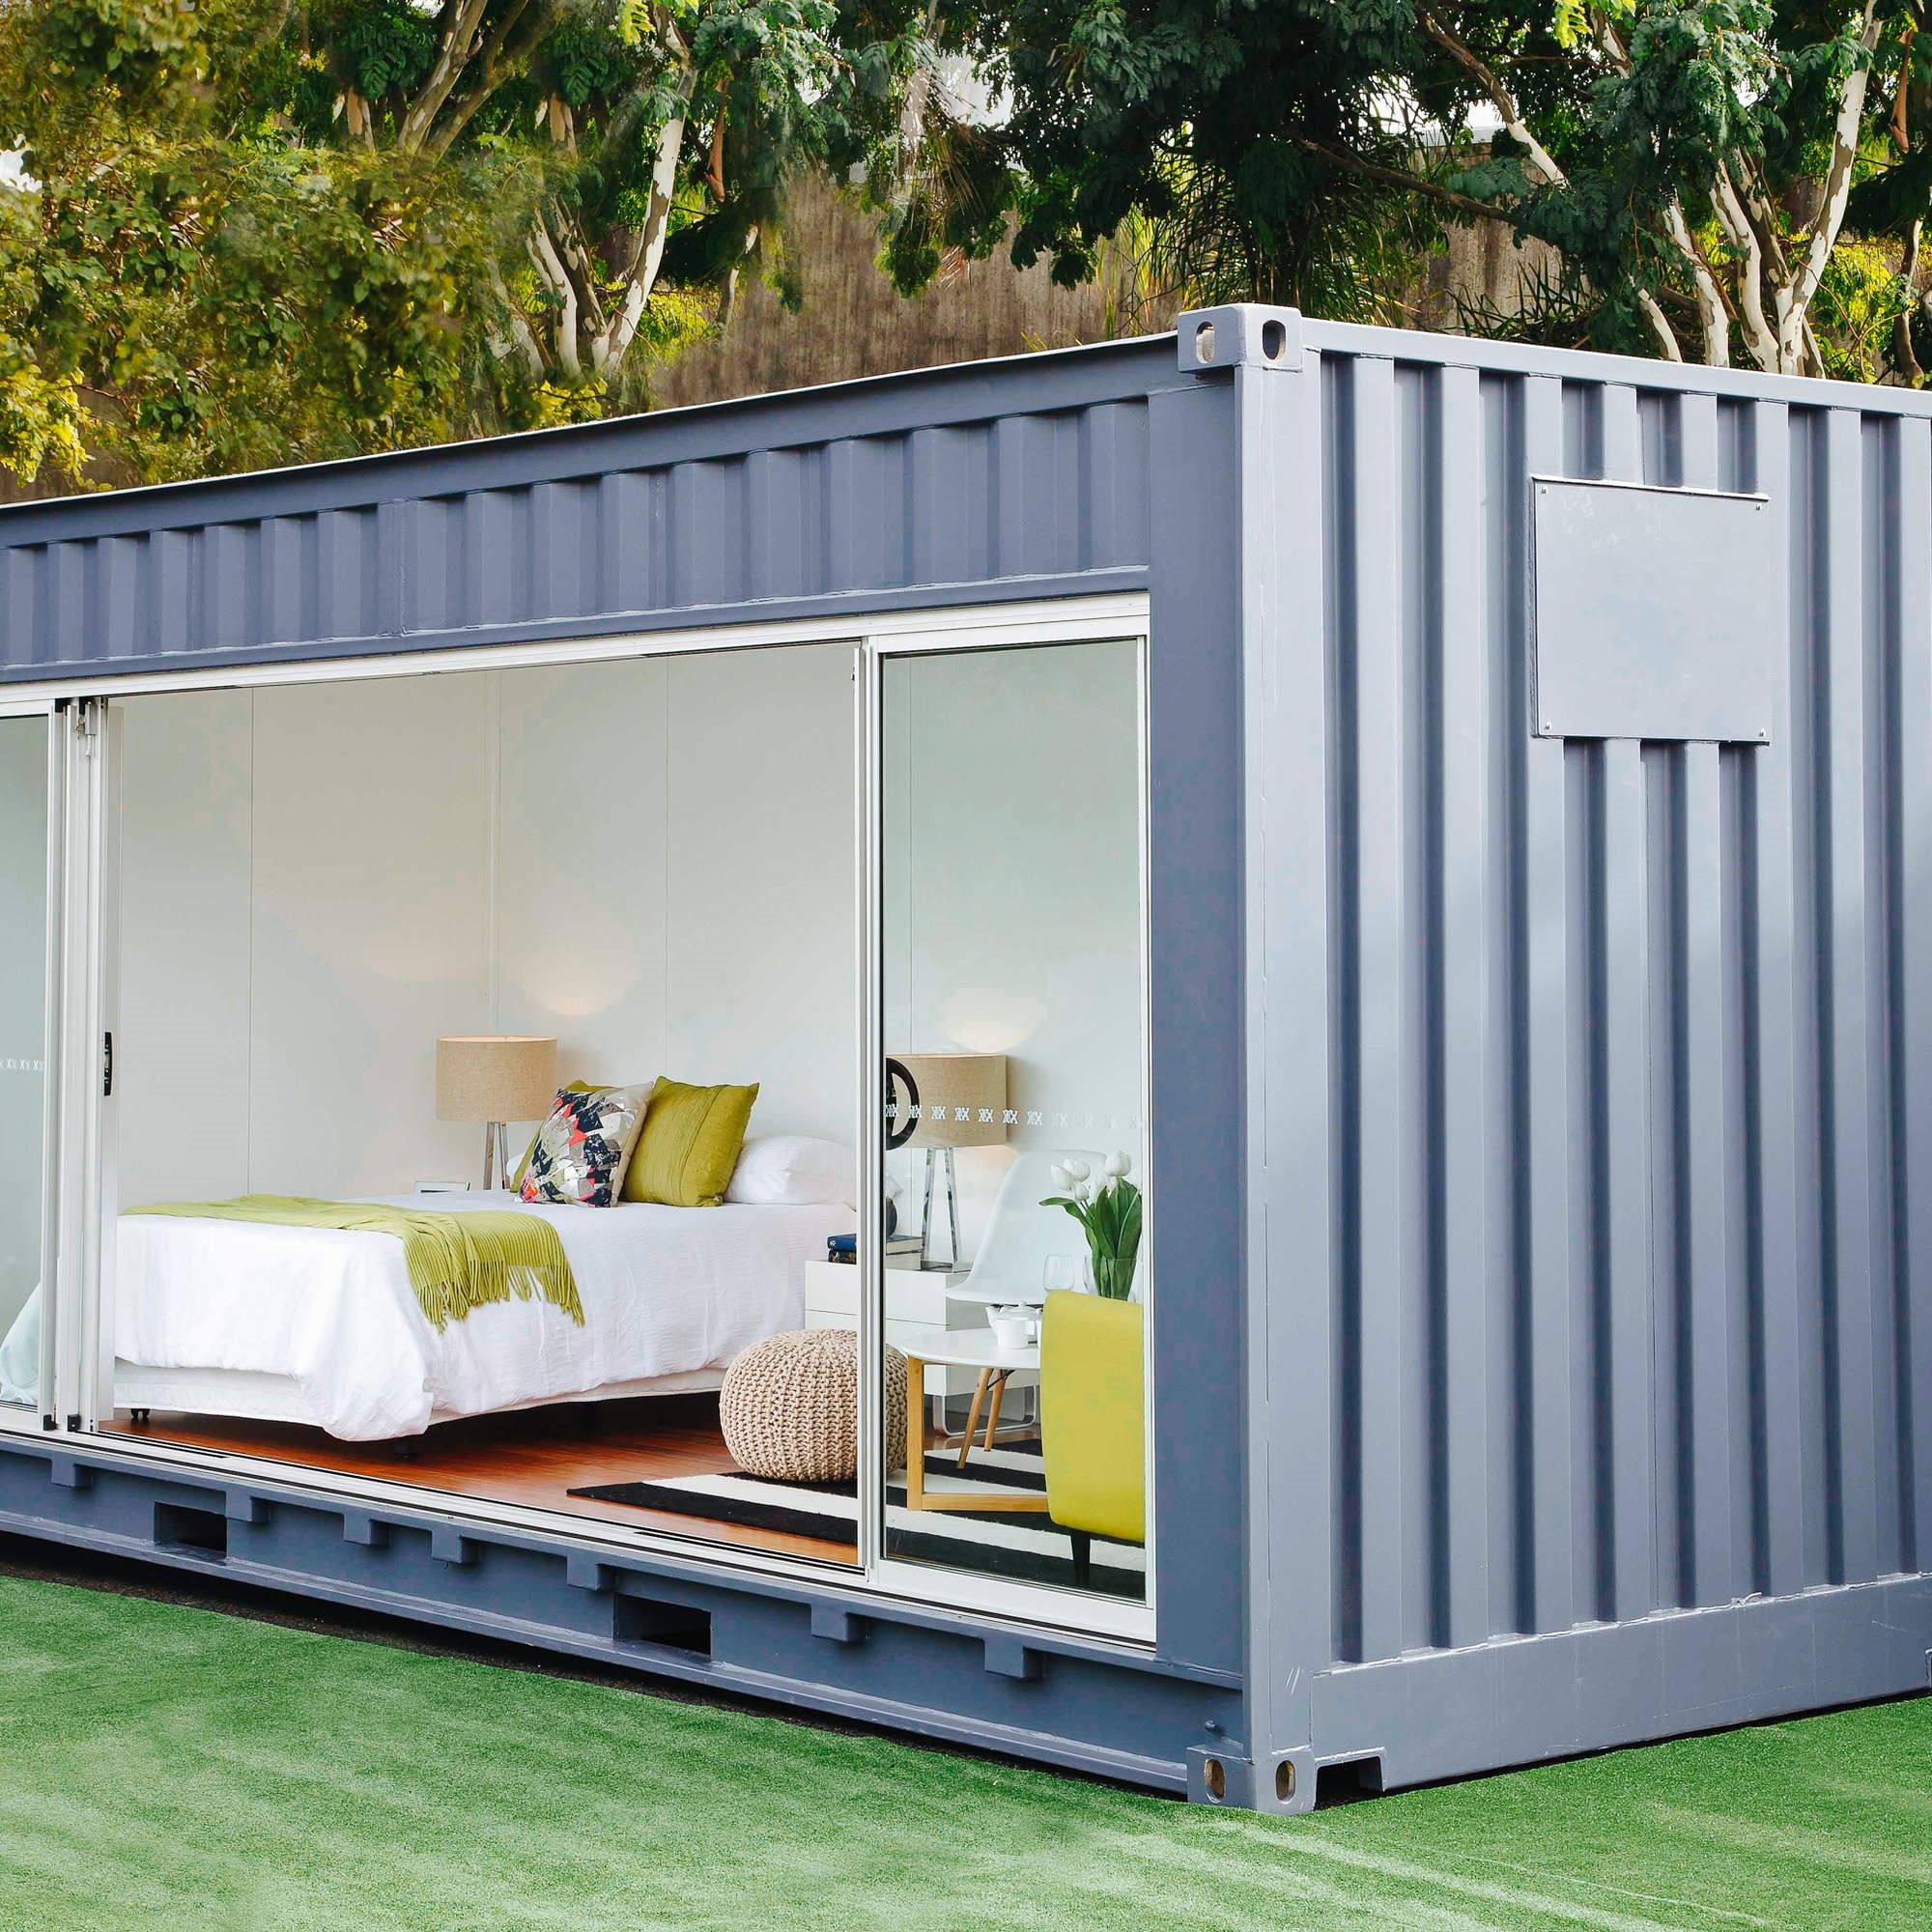 c2c8392fda09ec9f28287761c3762536 - Better Homes And Gardens Shipping Container House 2015